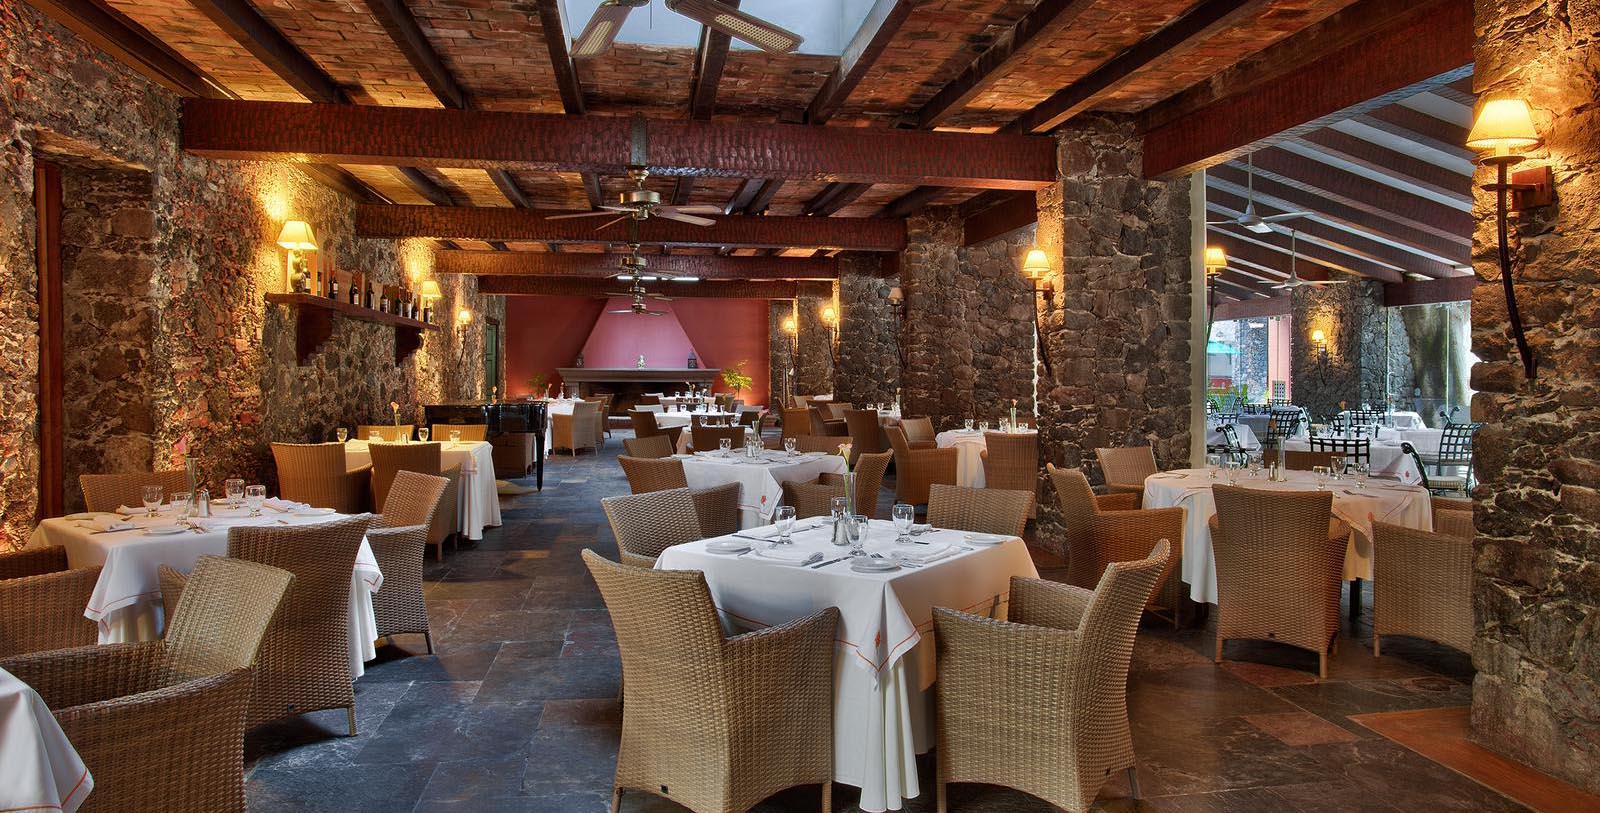 Image of Los Hules Restaurant, Hacienda Jurica by Brisas, Queretaro, Mexico, 1551, Member of Historic Hotels Worldwide, Taste